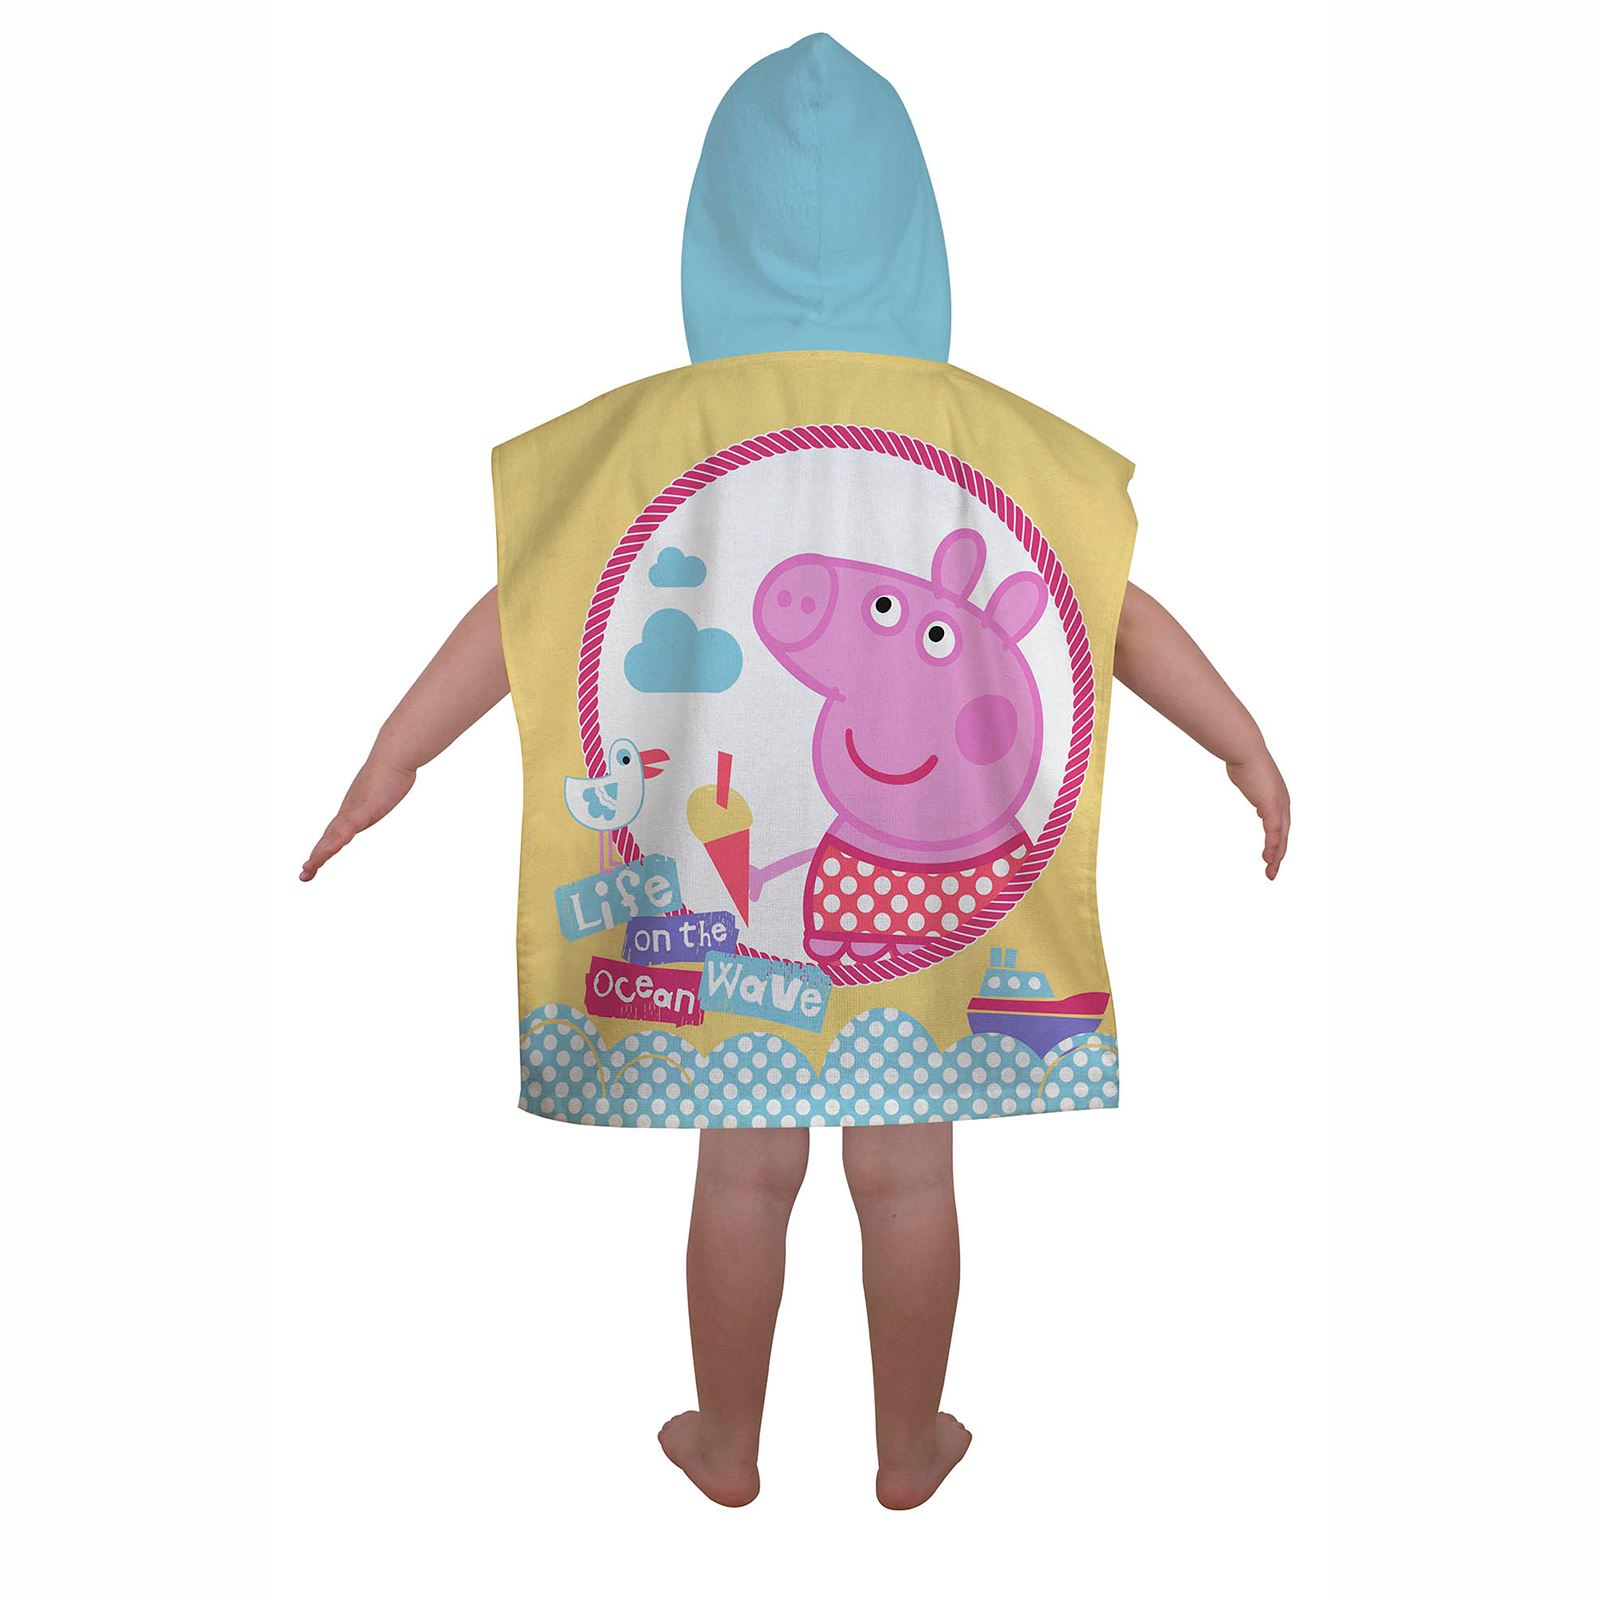 Peppa-Pig-George-100-Cotton-Beach-towels-amp-Hooded-Poncho-Boys-Girls-Kids miniature 9